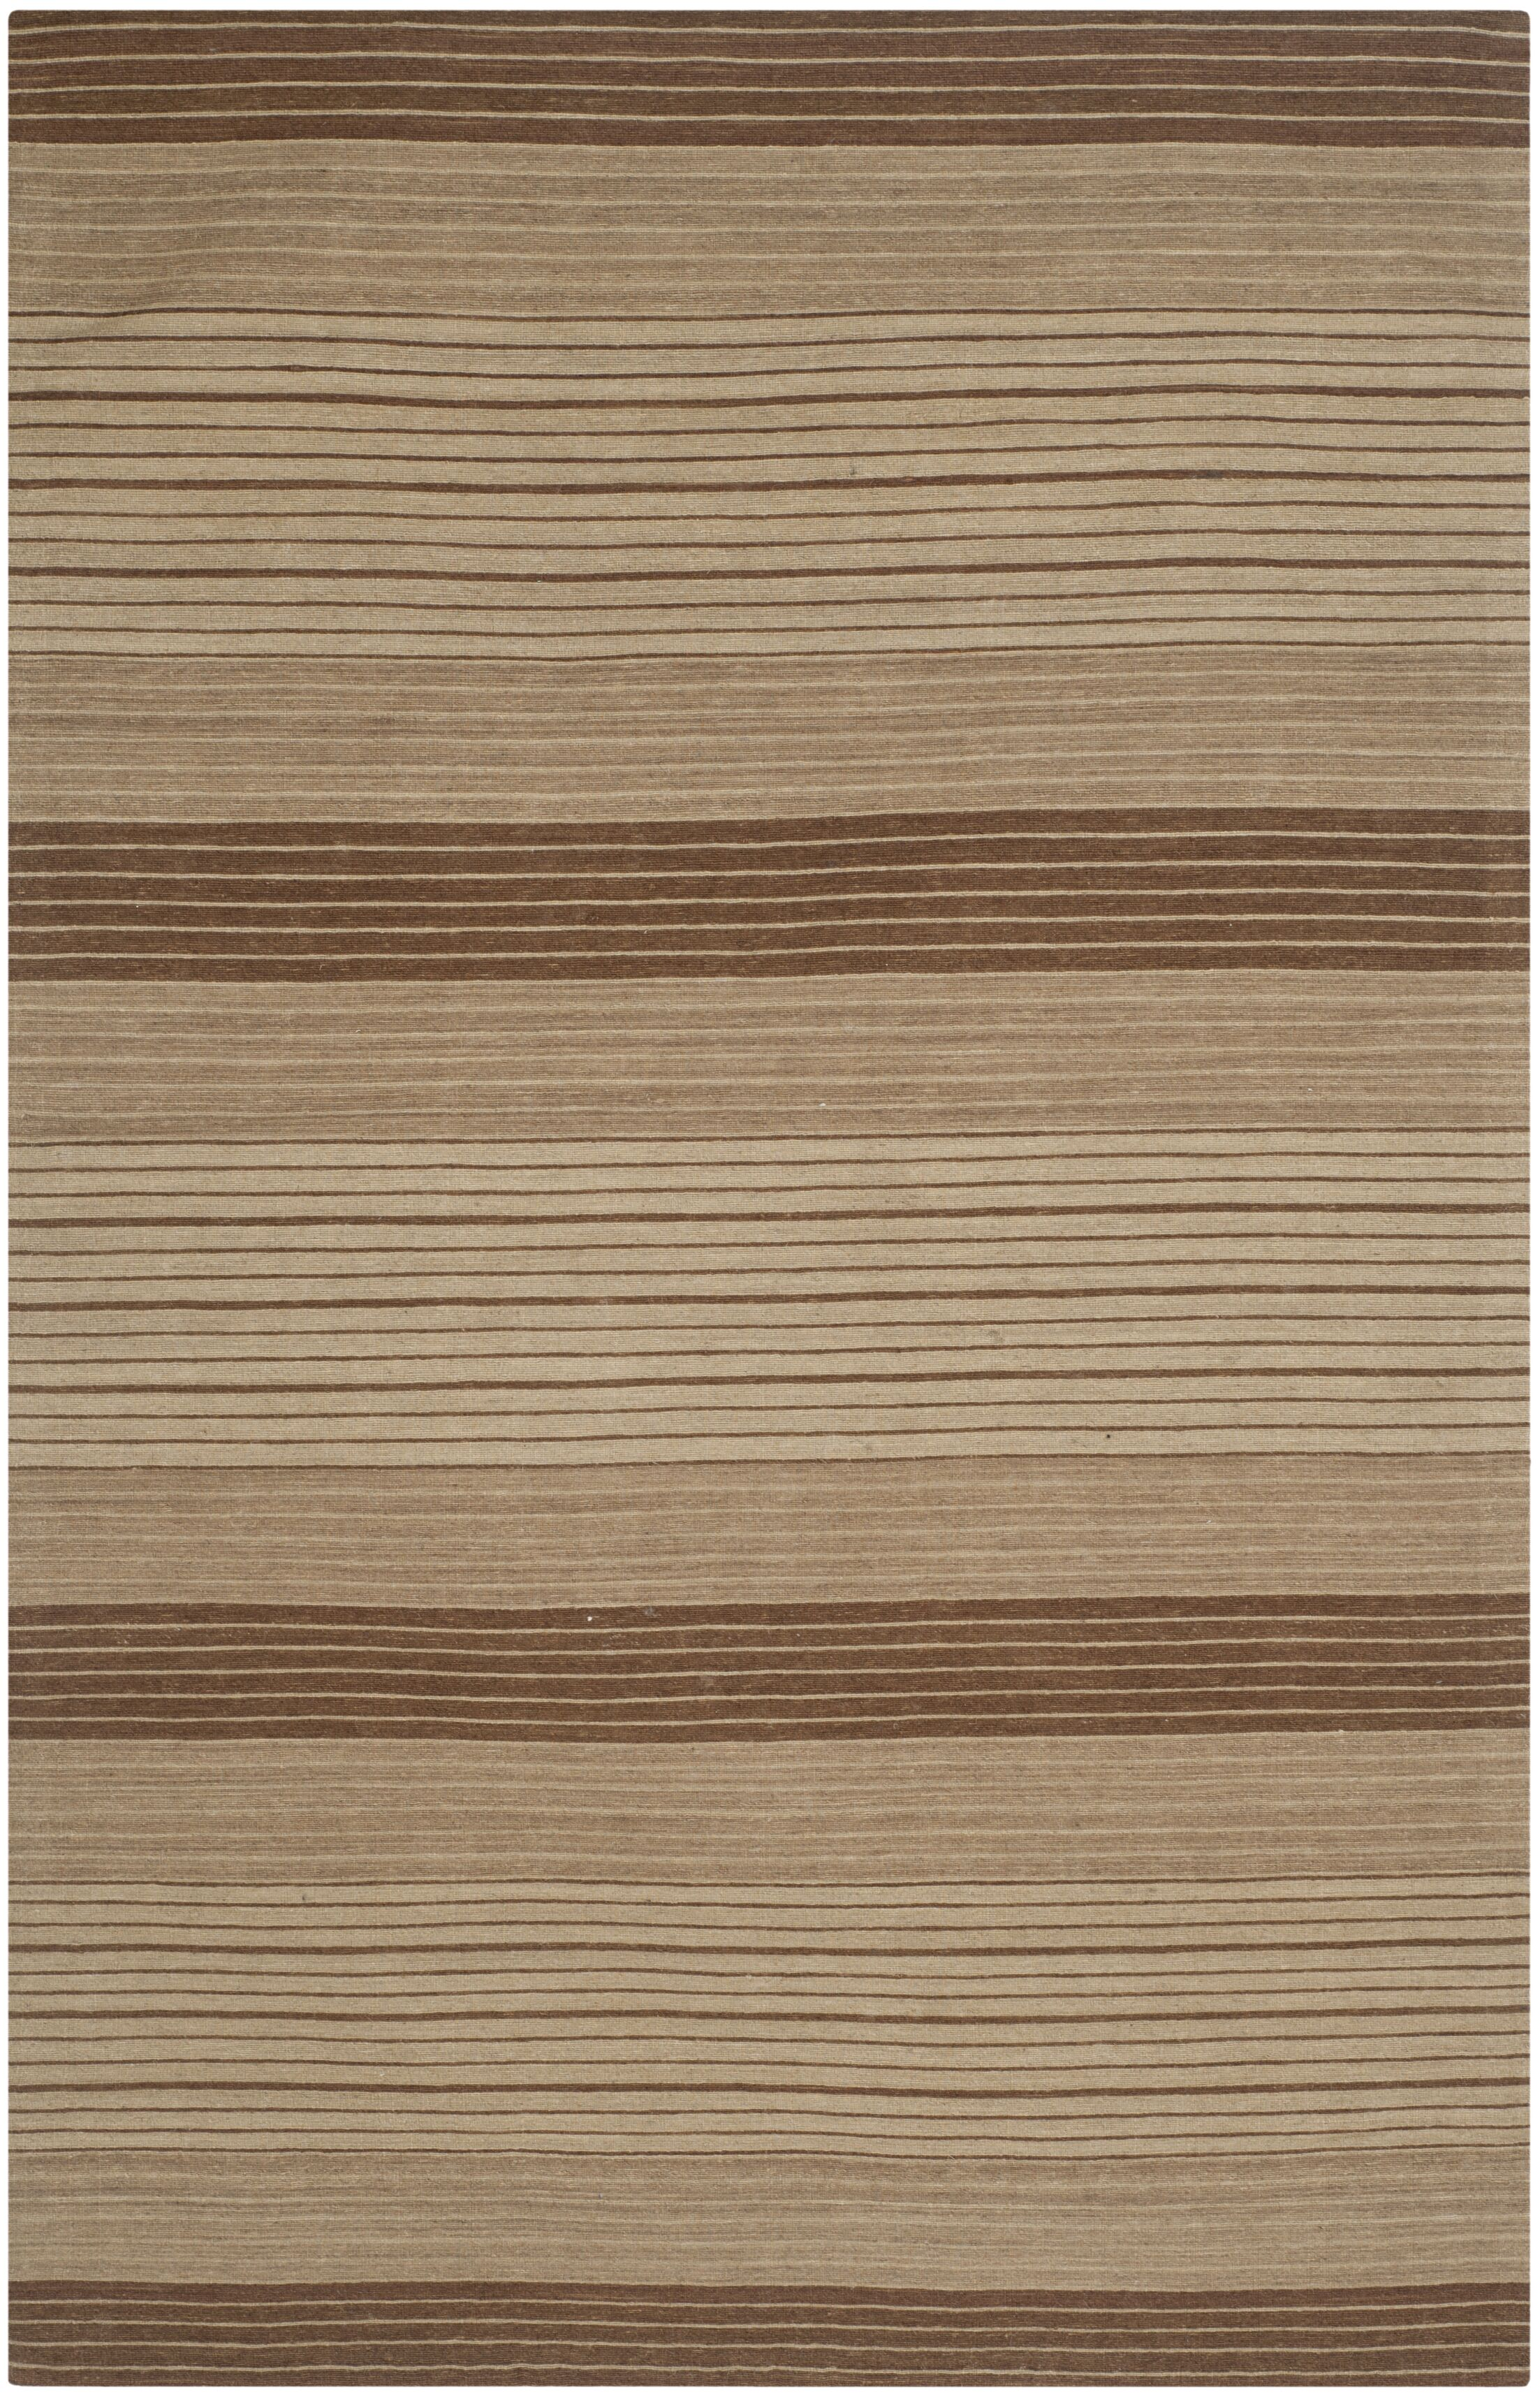 Jefferson Beige Striped Contemporary Area Rug Rug Size: Rectangle 8' x 10'